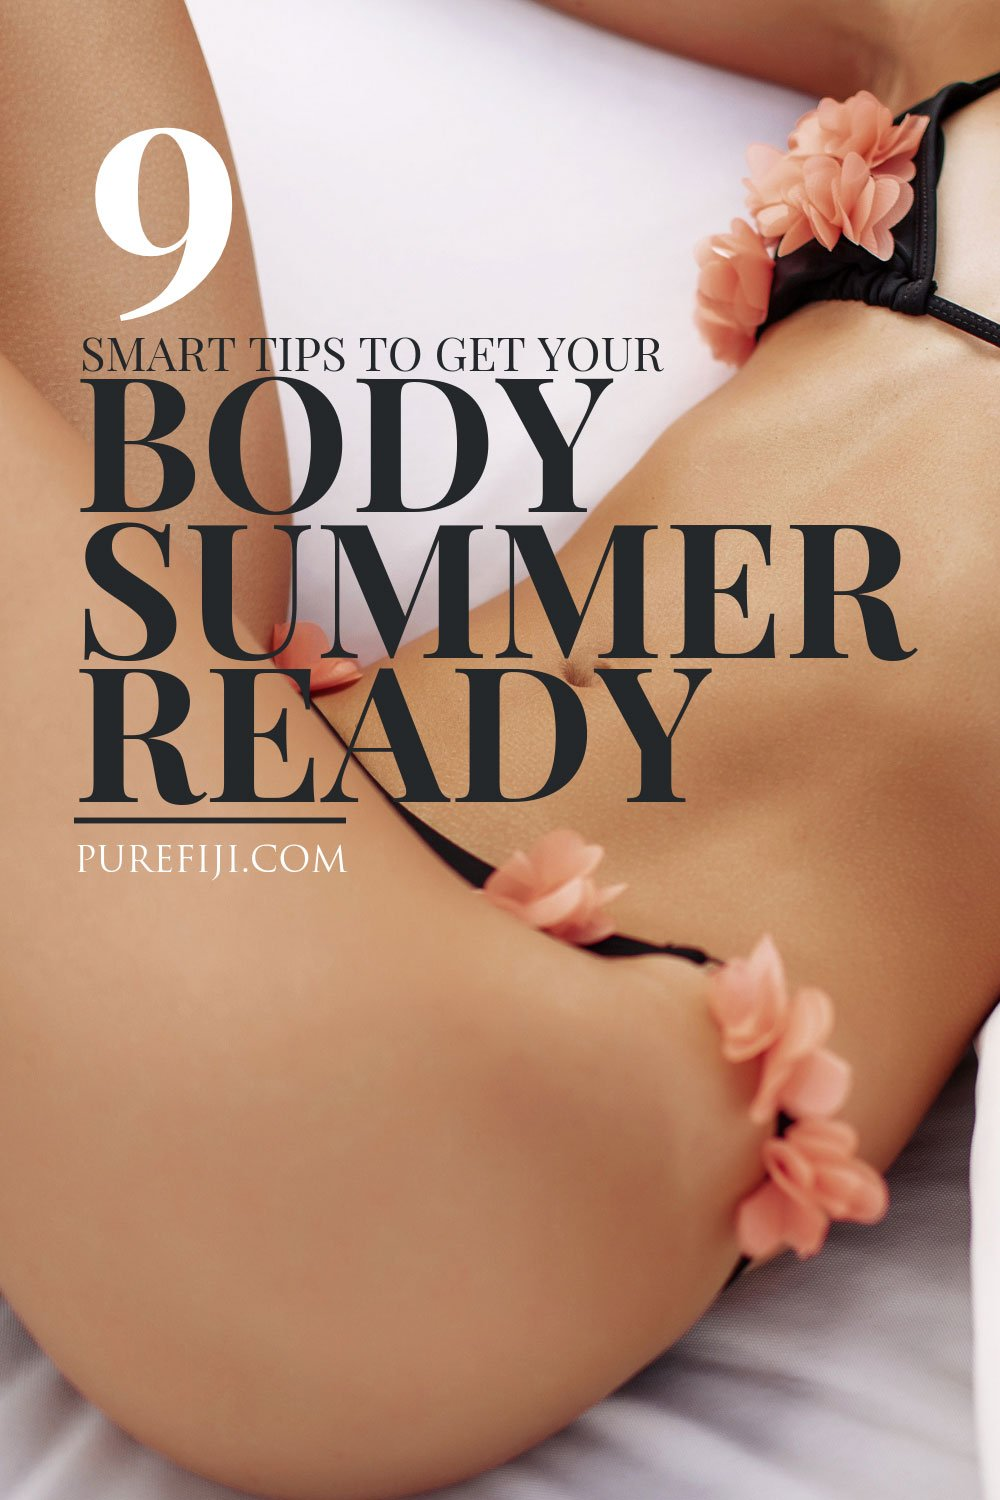 9 Smart Tips to Get Your Body Summer Ready